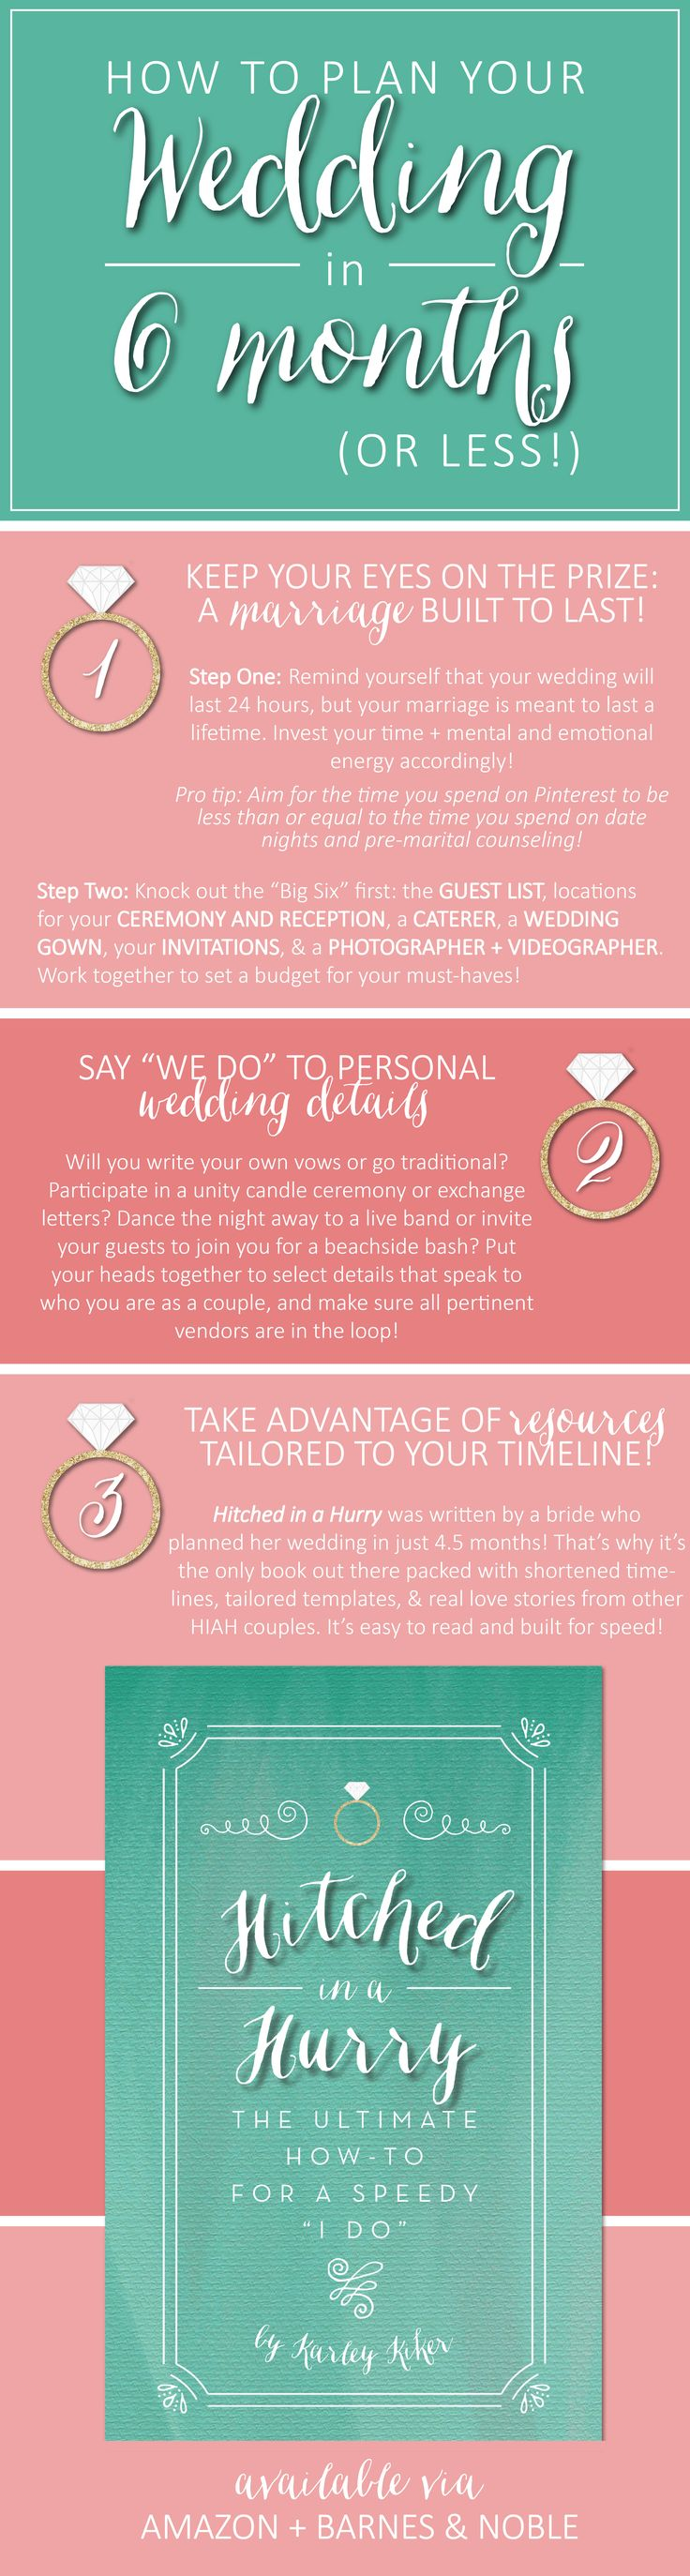 """Who says you have to be engaged for 12-18 months? You completely, totally, 100% CAN plan a wedding in 6 months or less! Say """"I do"""" to exchanging the title of fiance for wife sooner rather than later + learn how to keep your eyes on the prize throughout the wedding planning process: a marriage built to last!"""